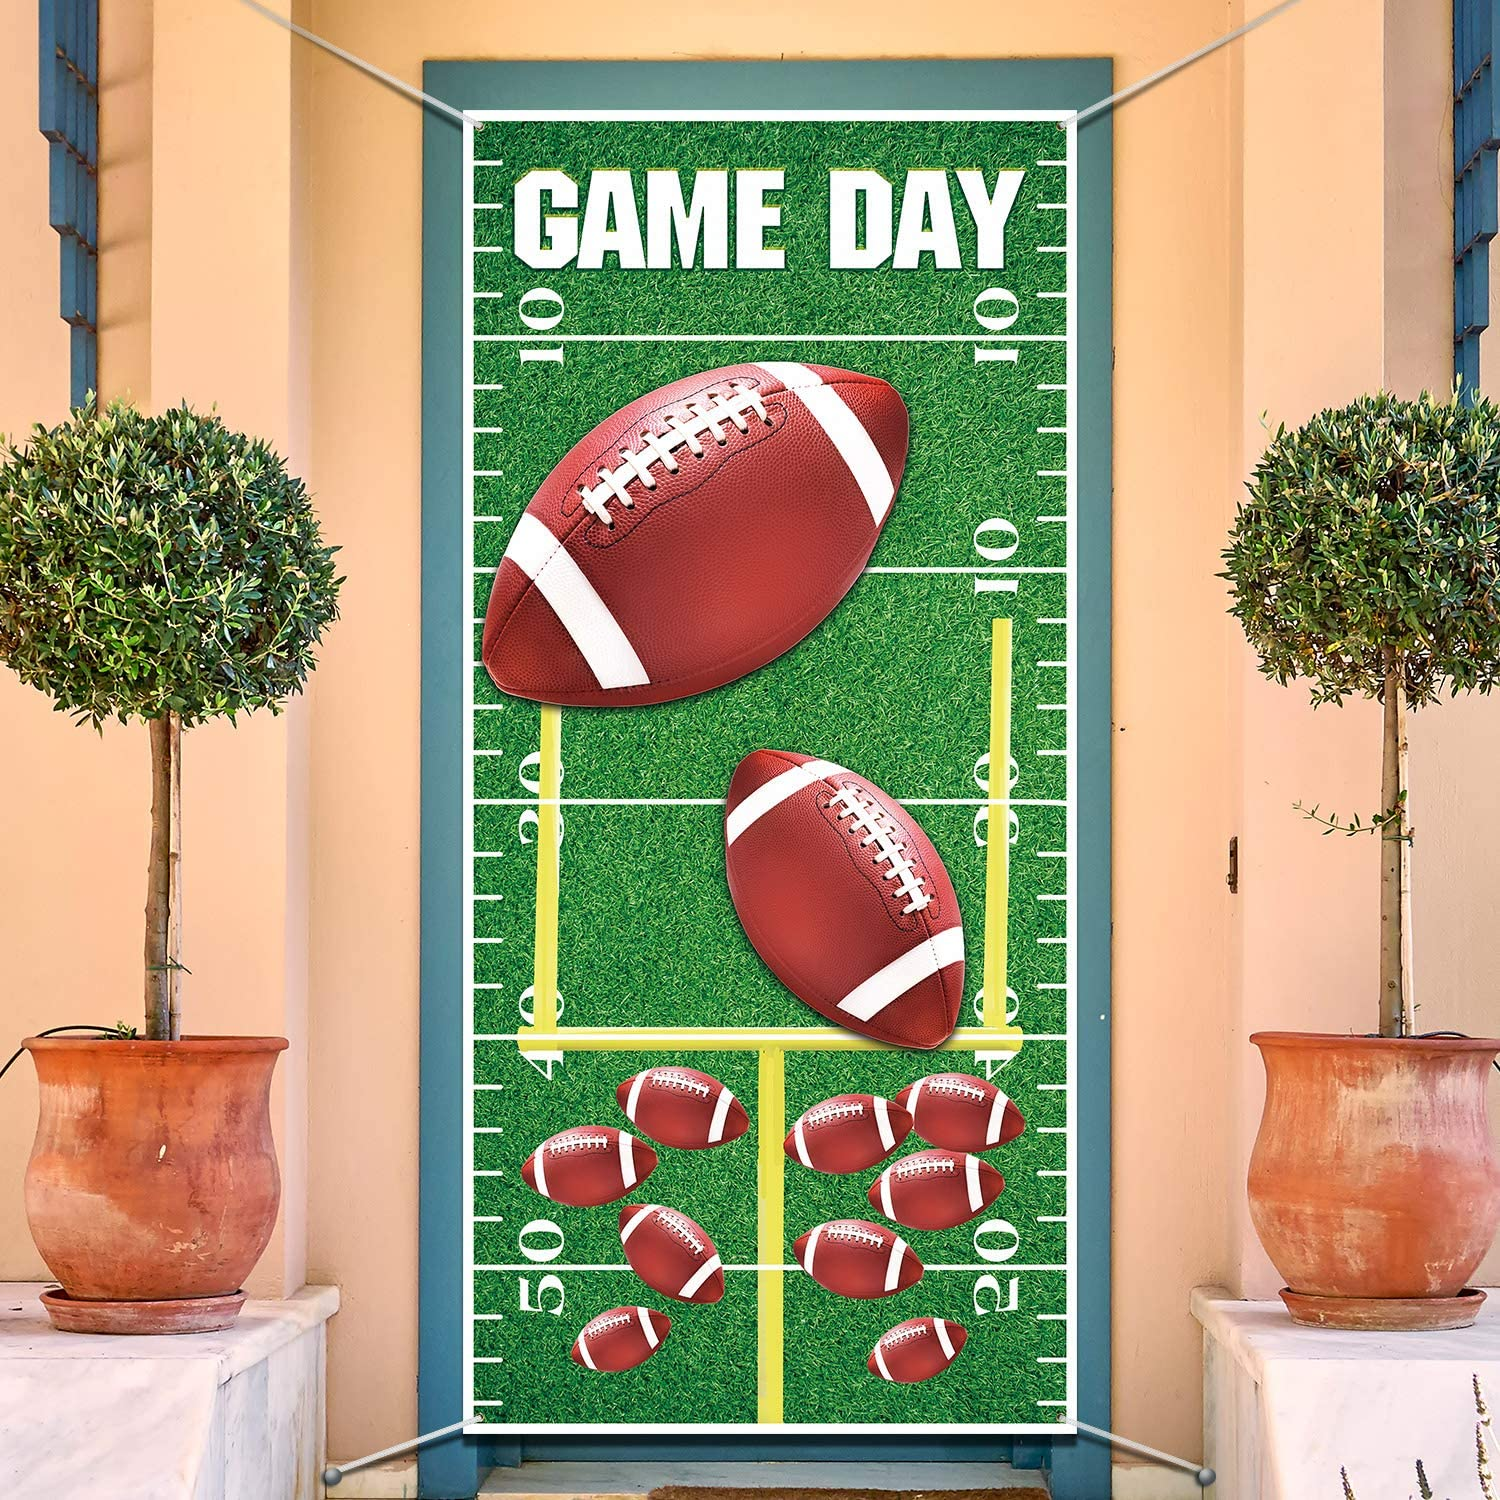 Football Party Decorations, American Football Field Green Grass Door Cover for Football Theme Party Supplies, Football Backdrops Photography Kids Birthday Party Banner